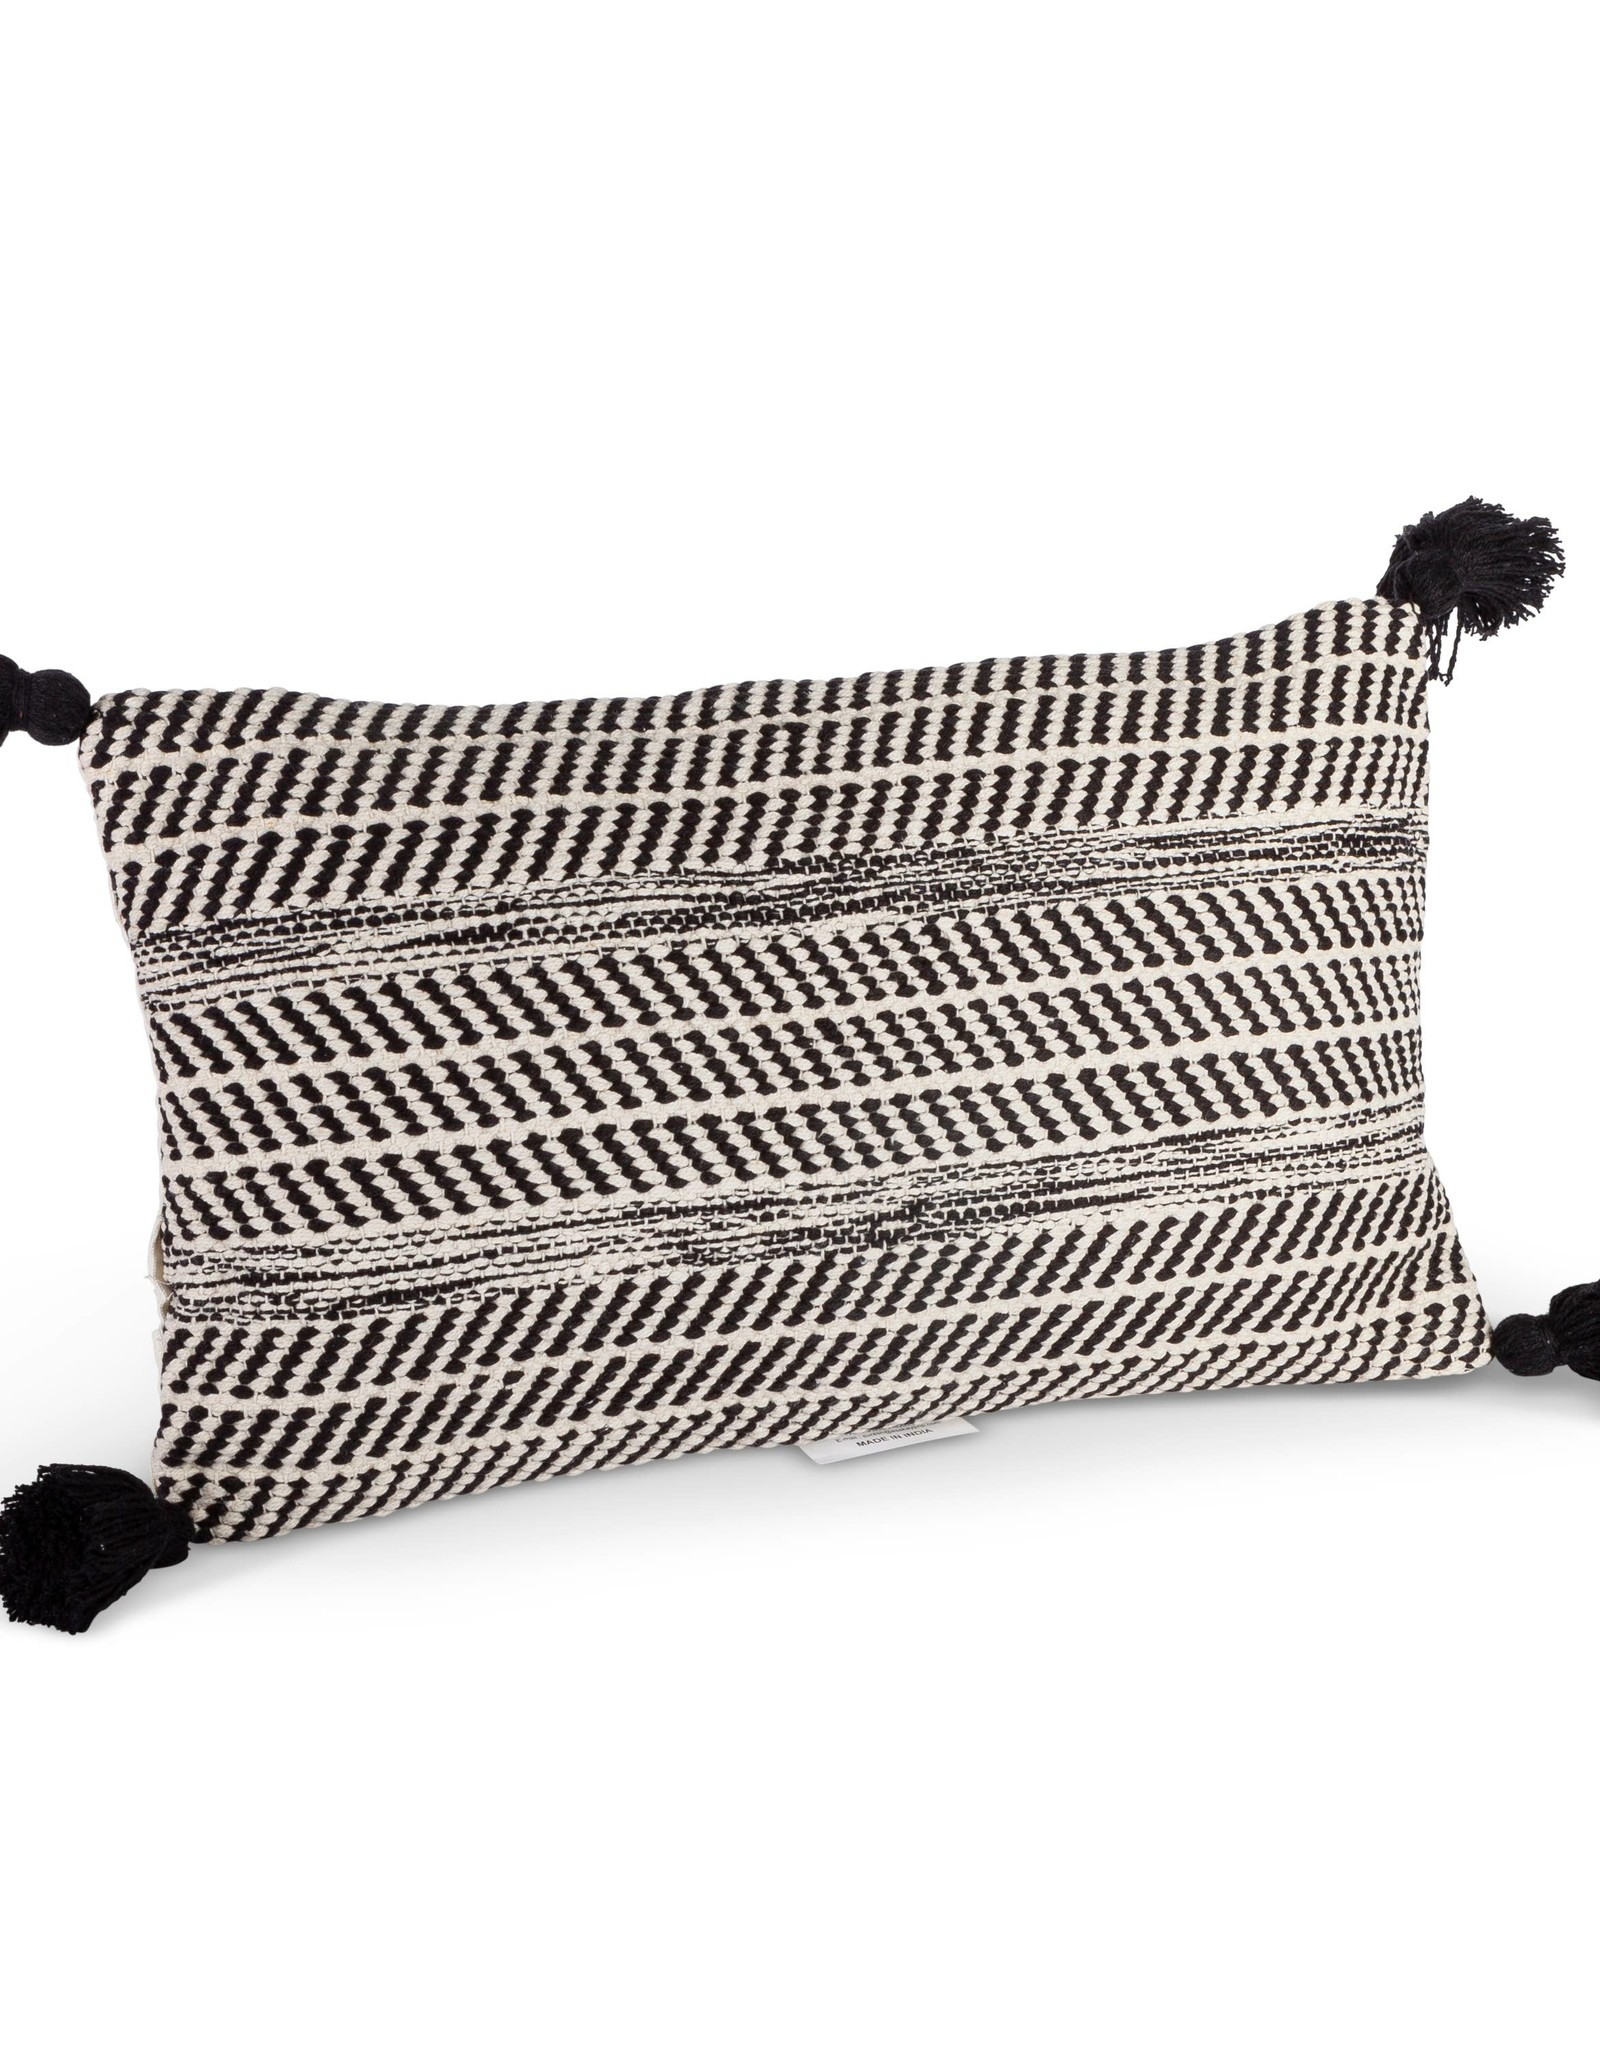 The Gerson Companies Lumbar Pillow - Black and White Woven